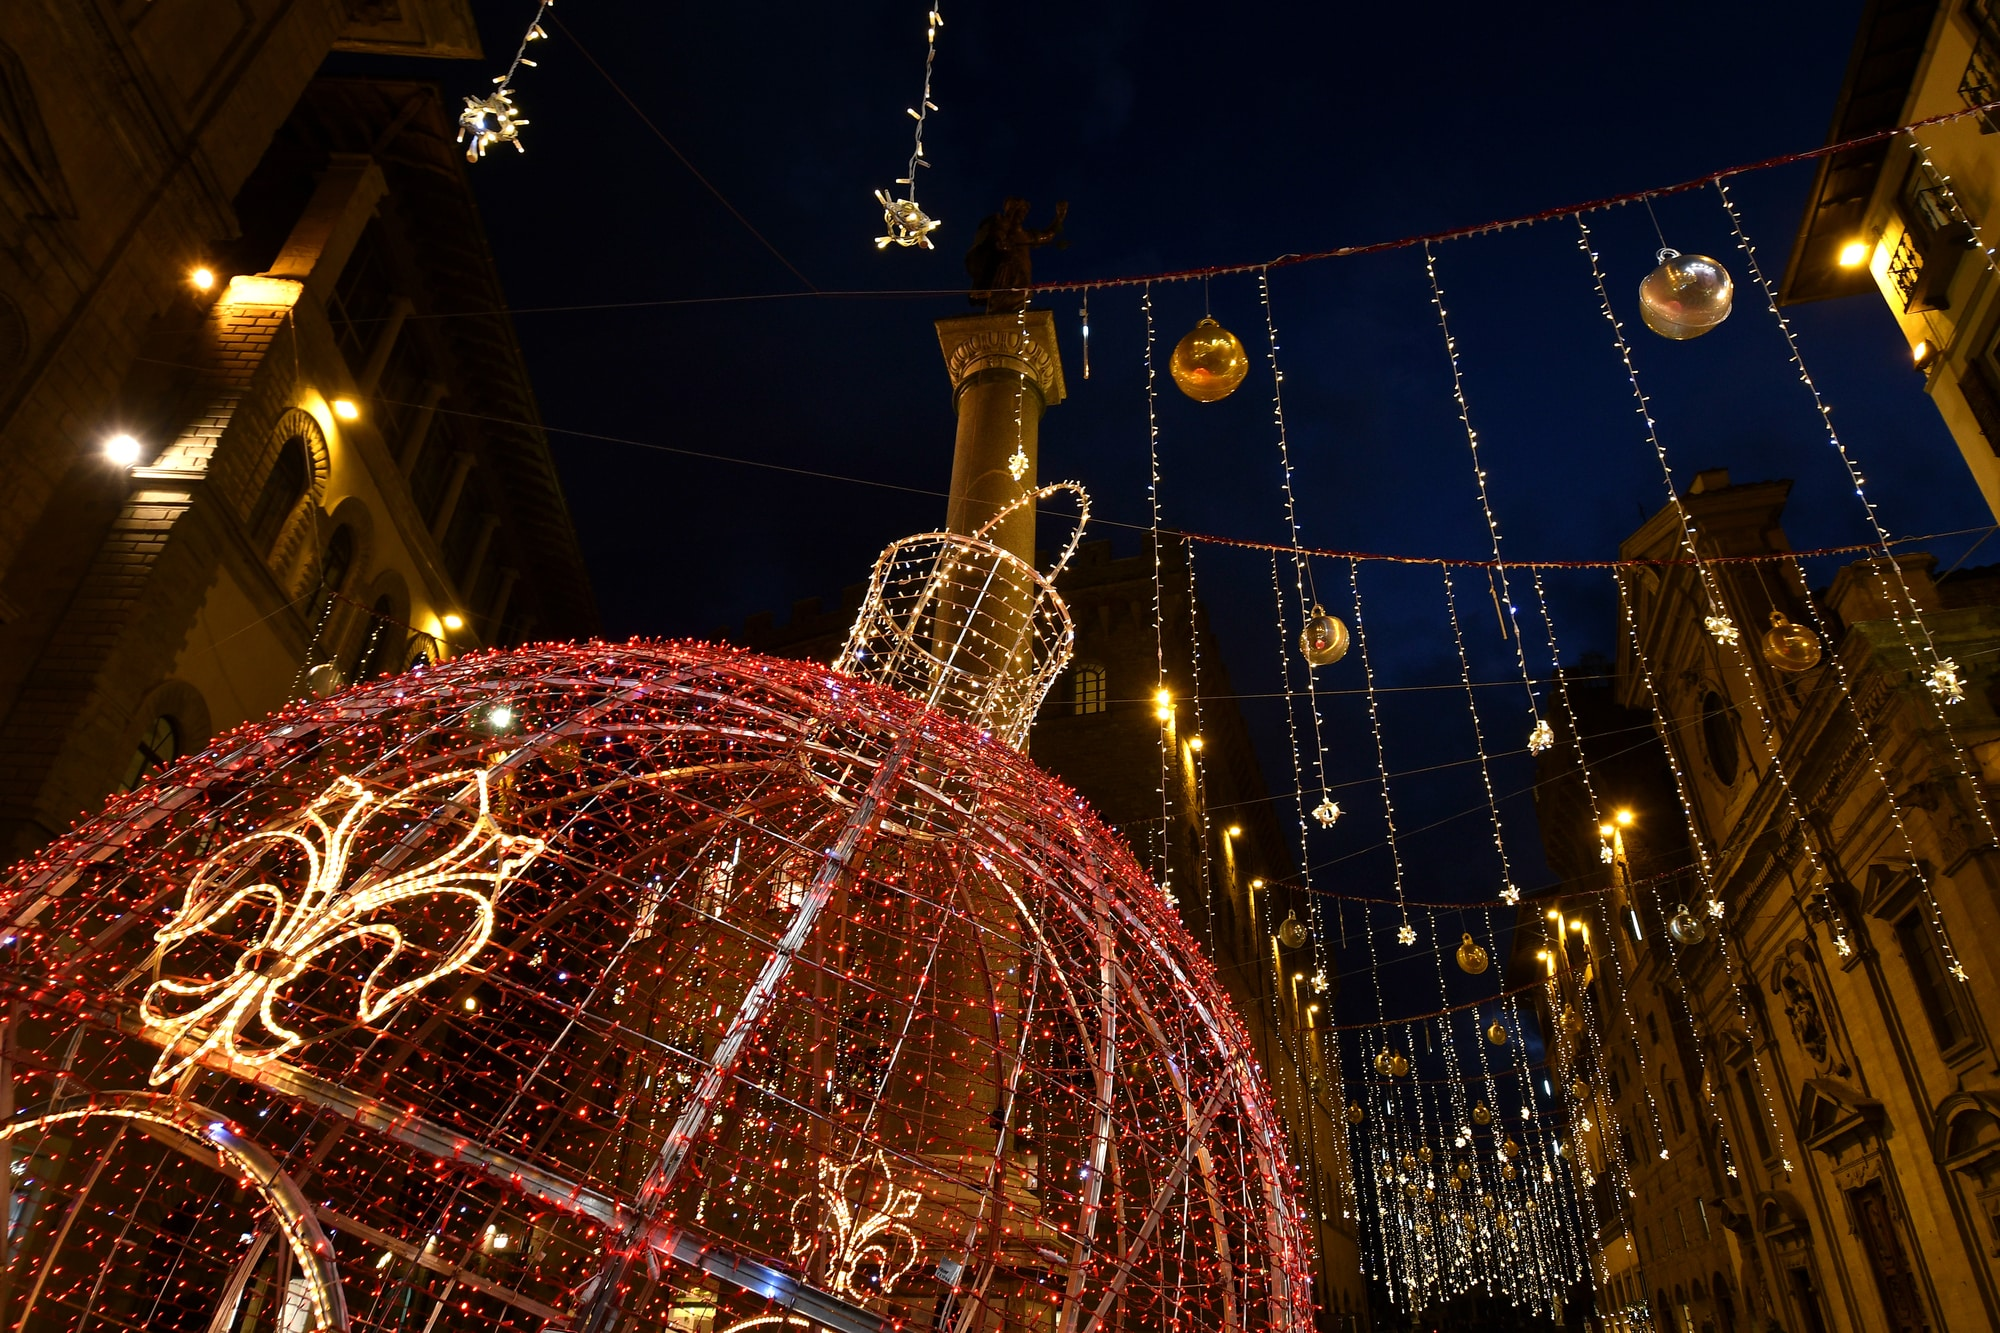 Christmas lights decorations in Santa Trinita Square in Florence Italy